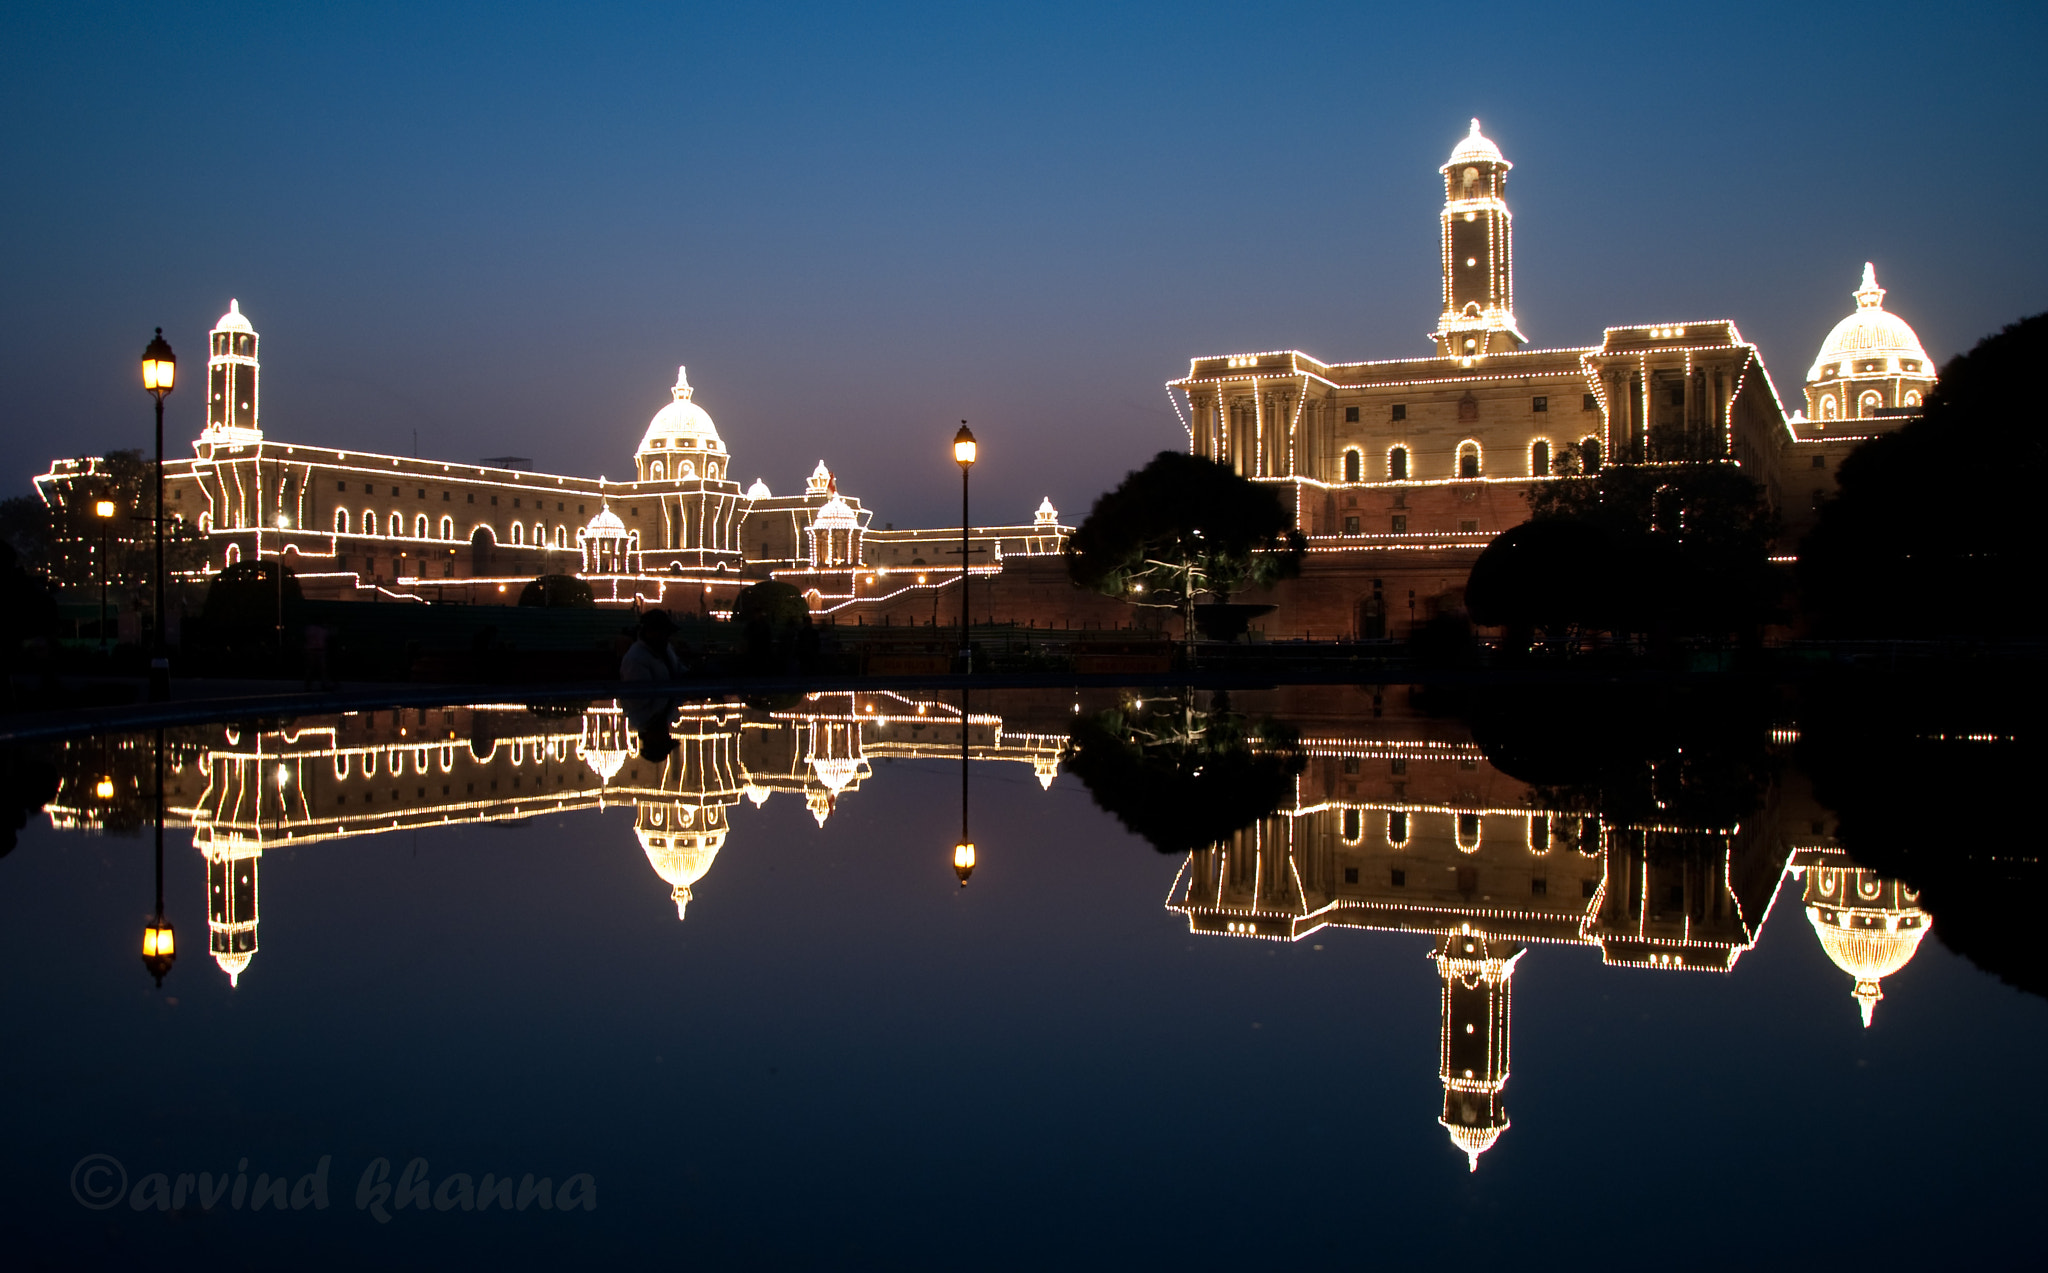 Photograph Untitled by Arvind Khanna on 500px